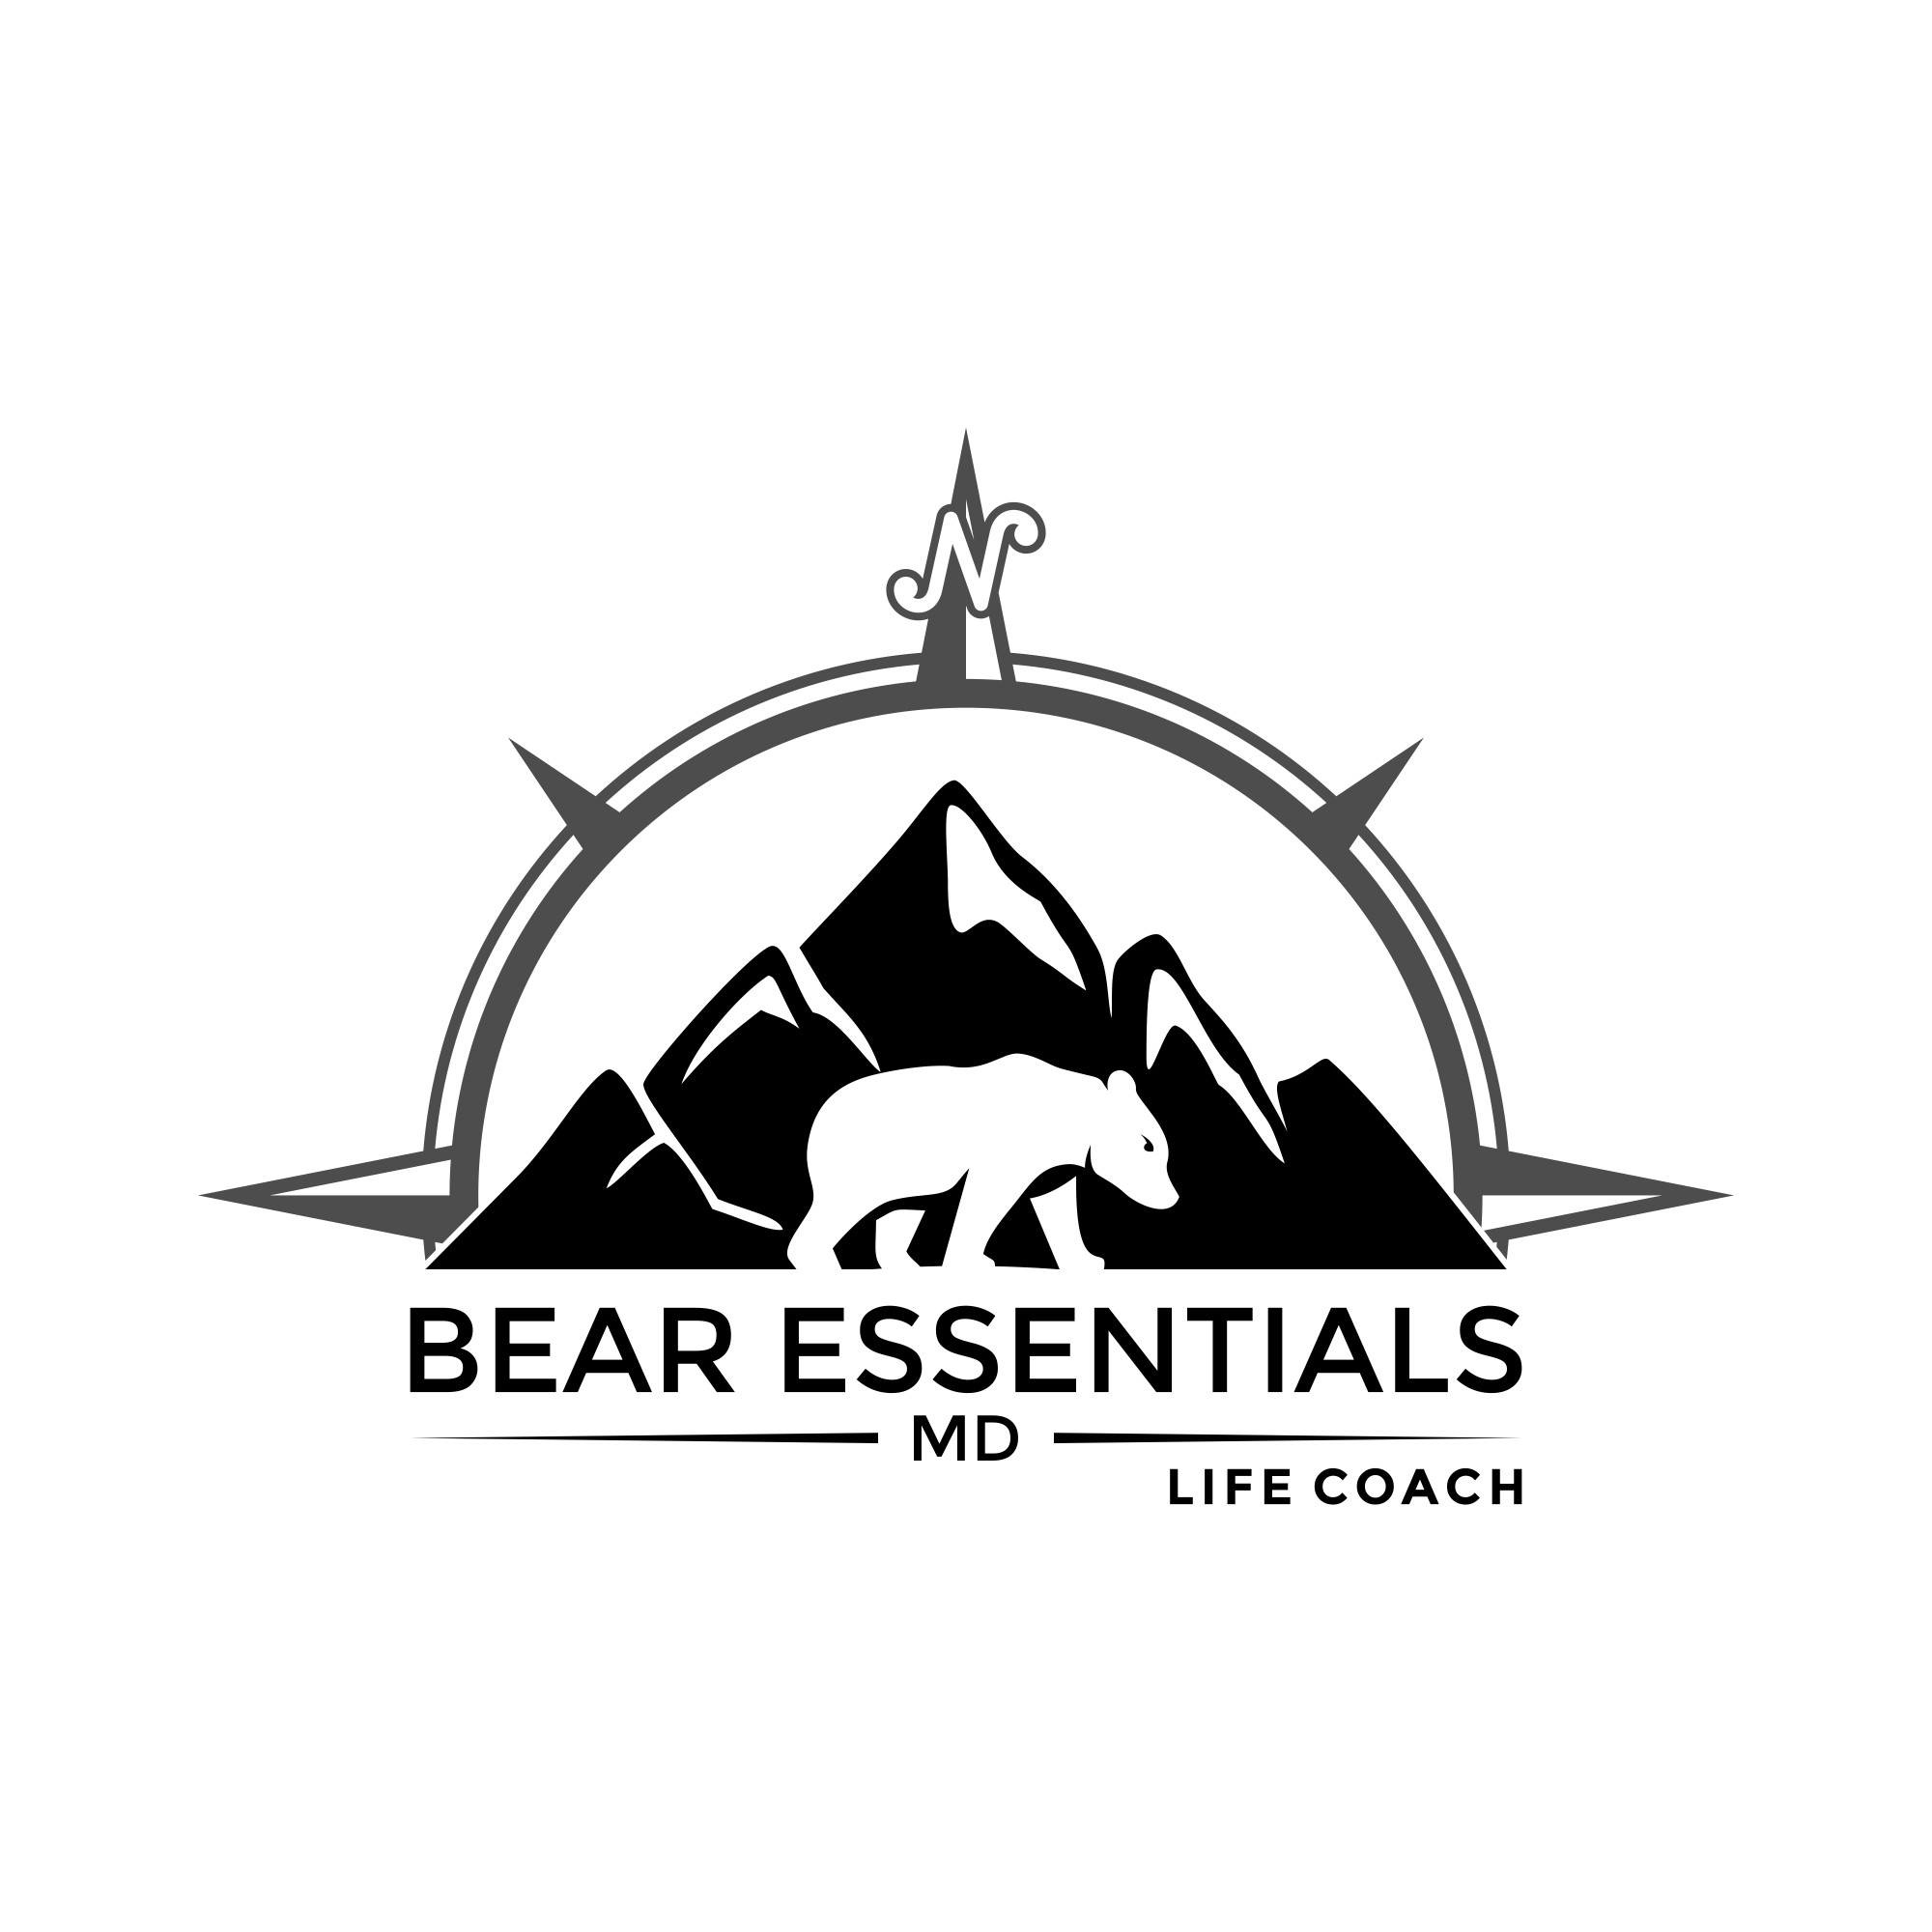 Bearly happy with life?  Outdoors life coach needs some logo love.